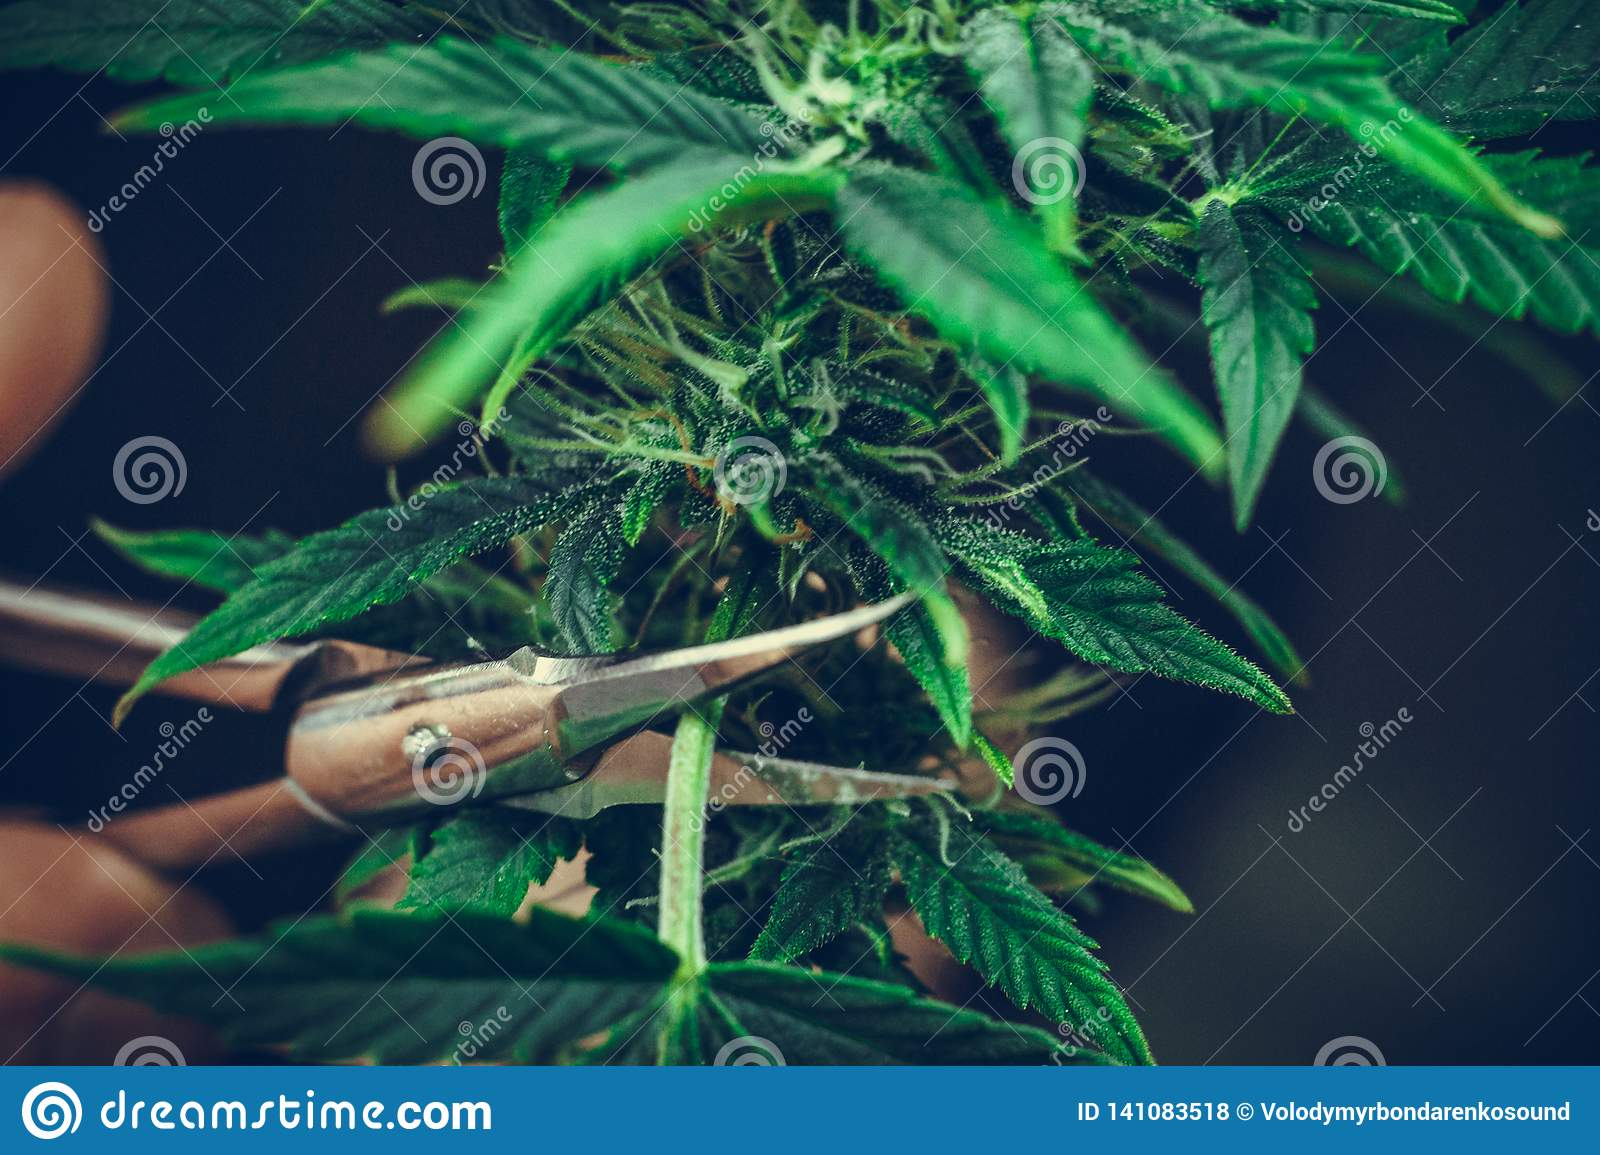 The person trimming leaves of medical marijuana plant close-up. Cannabis plant growing indoor